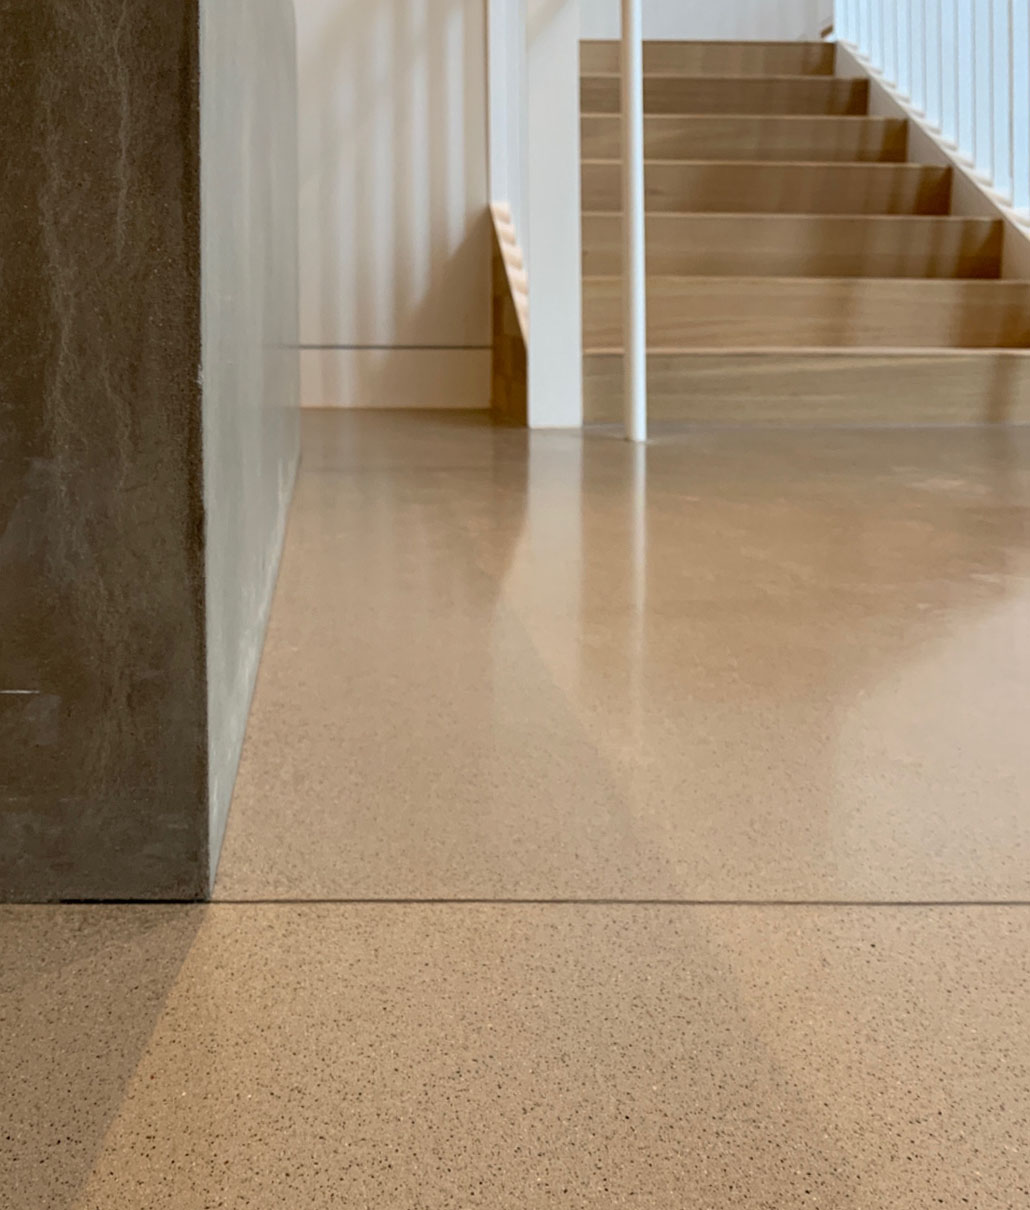 A polished concrete floor with a grouted saw cut line. These contrasting grout lines both accent the decorative cuts and eliminate cleaning issues.